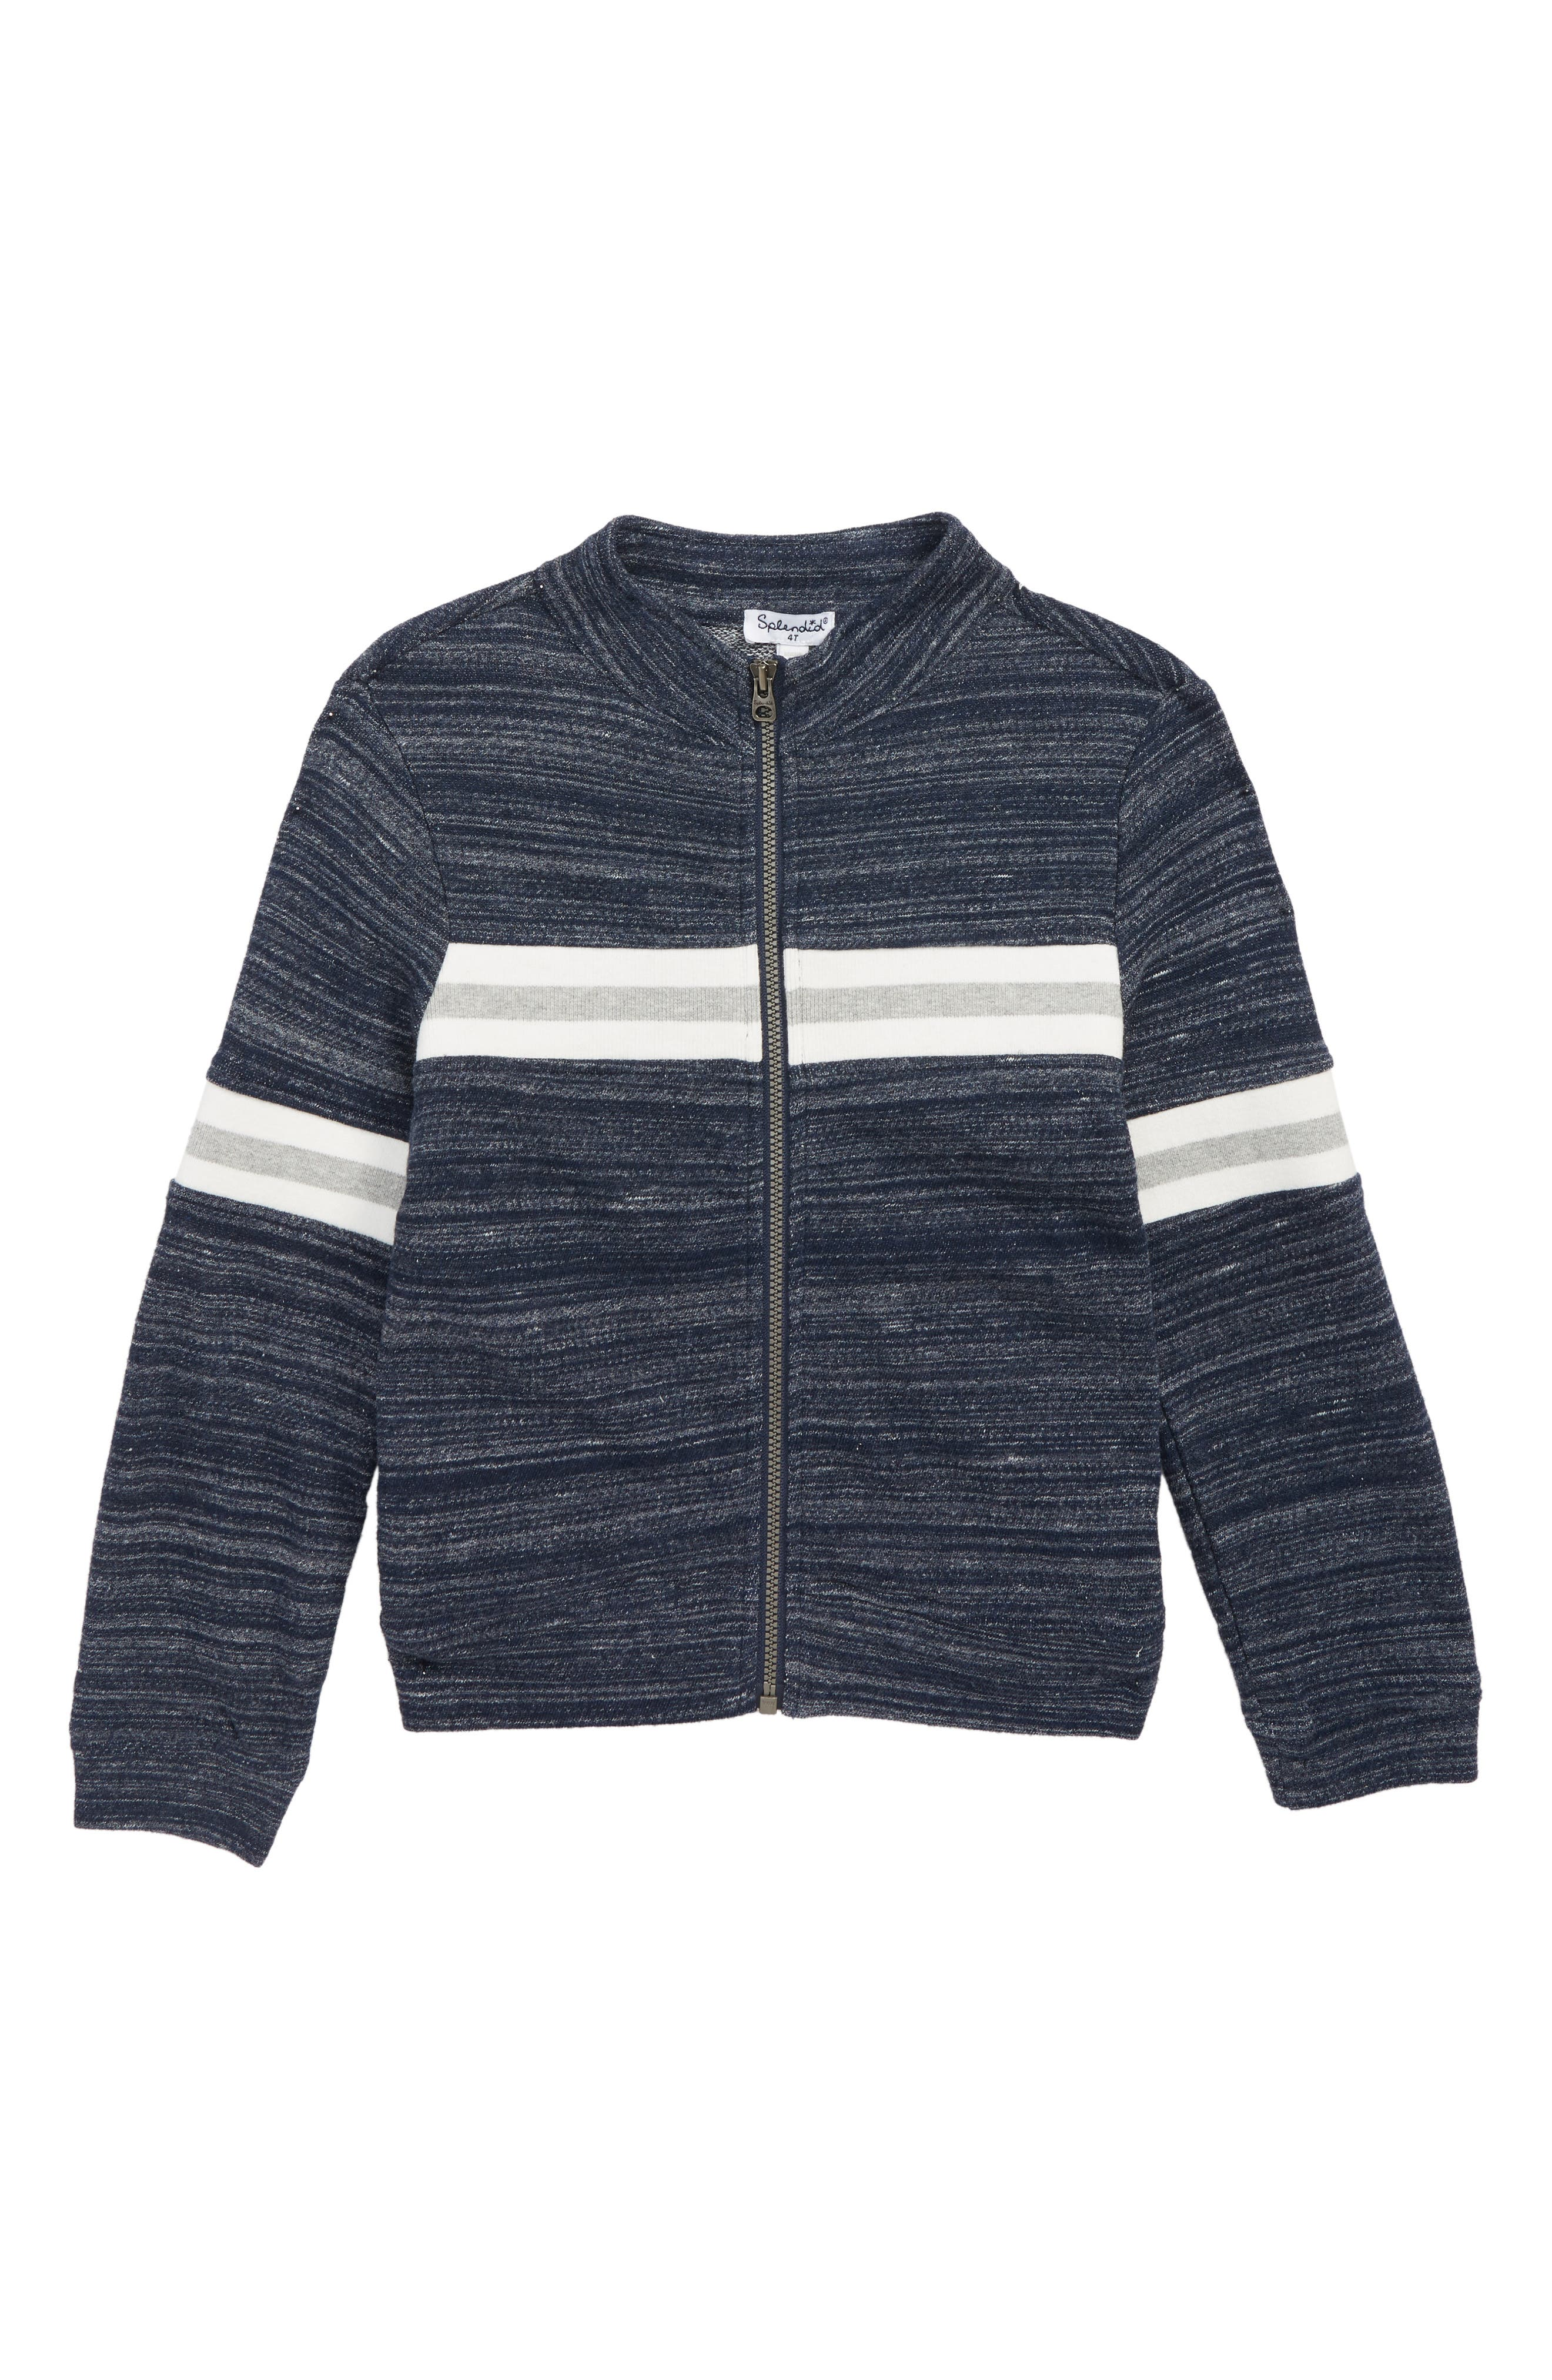 French Terry Jacket,                         Main,                         color, TRUE NAVY